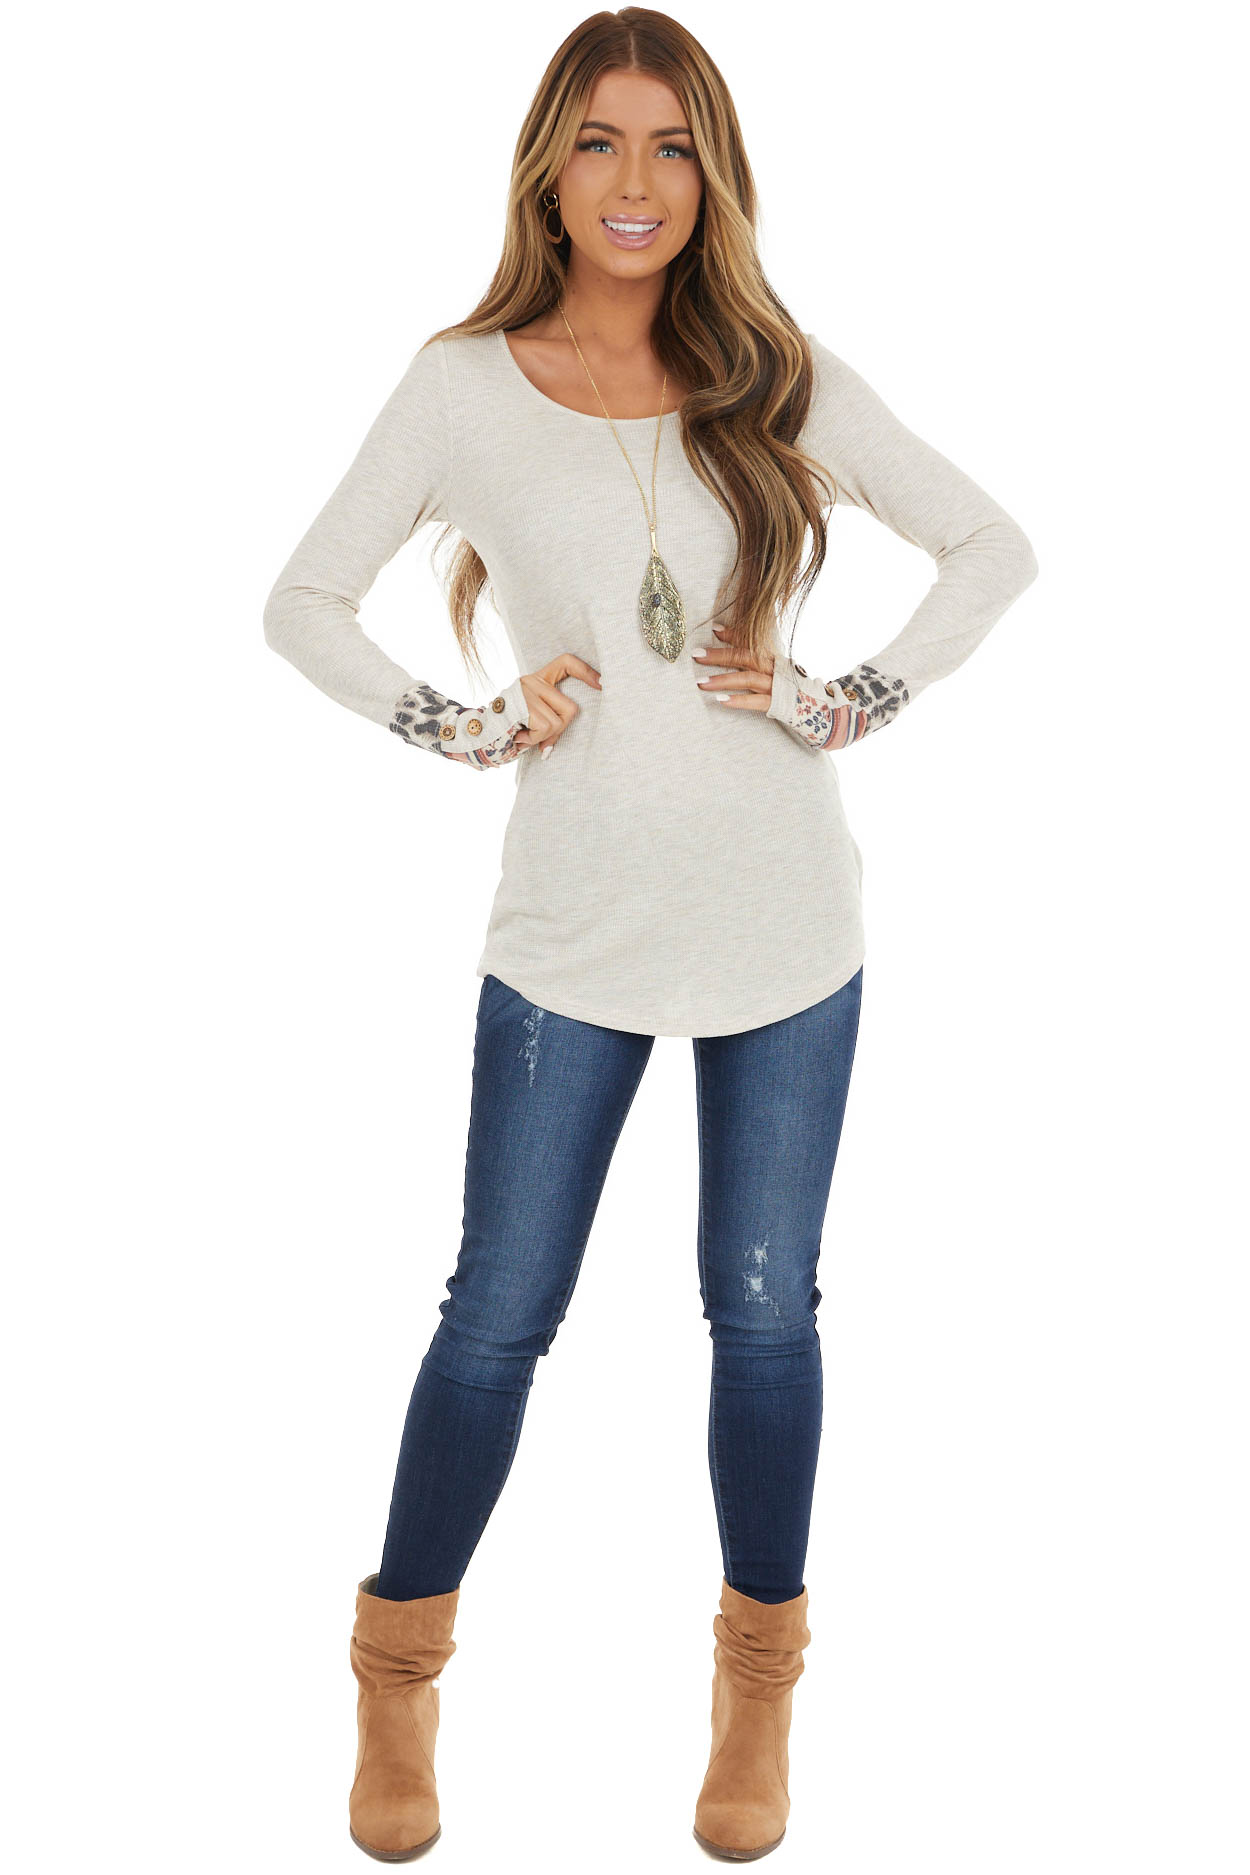 Heathered Oatmeal Waffle Knit Top with Multiprint Cuff